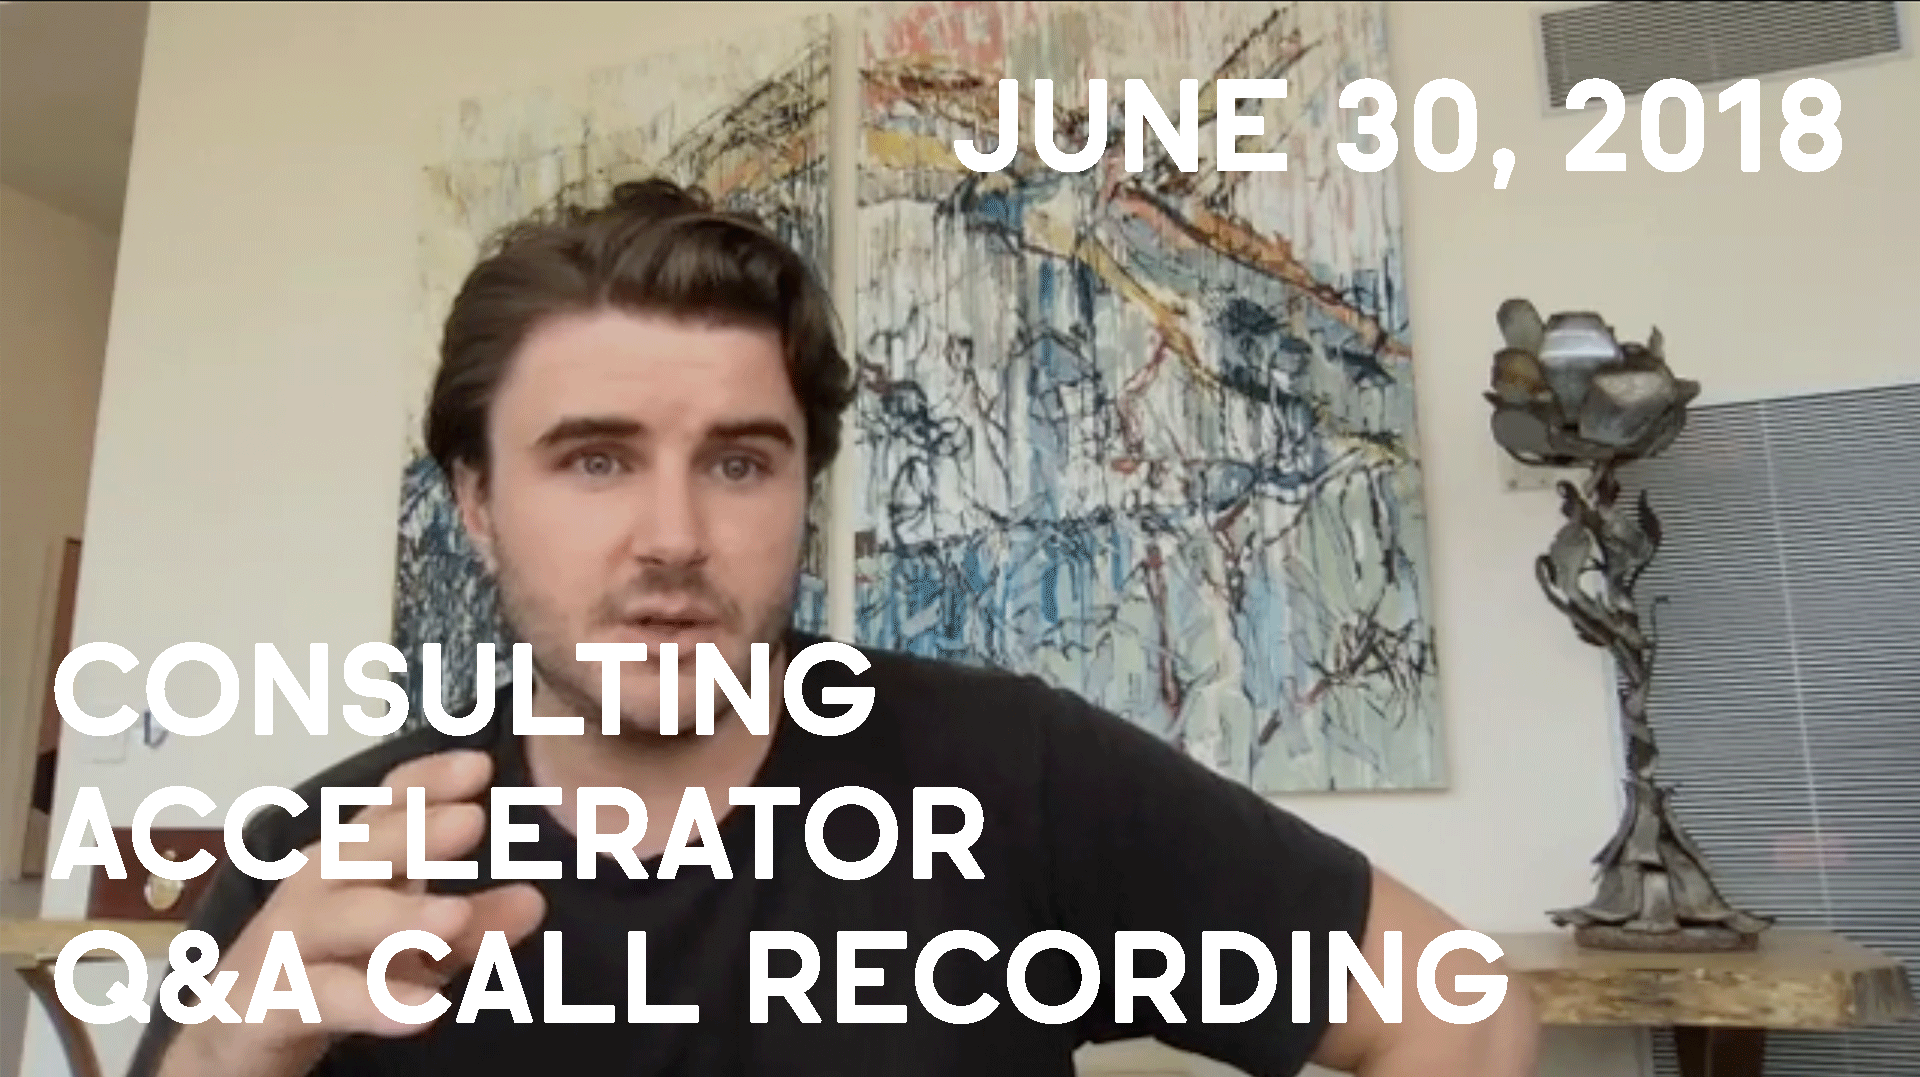 Consulting Accelerator Livestream Q&A, June 30th, 2018